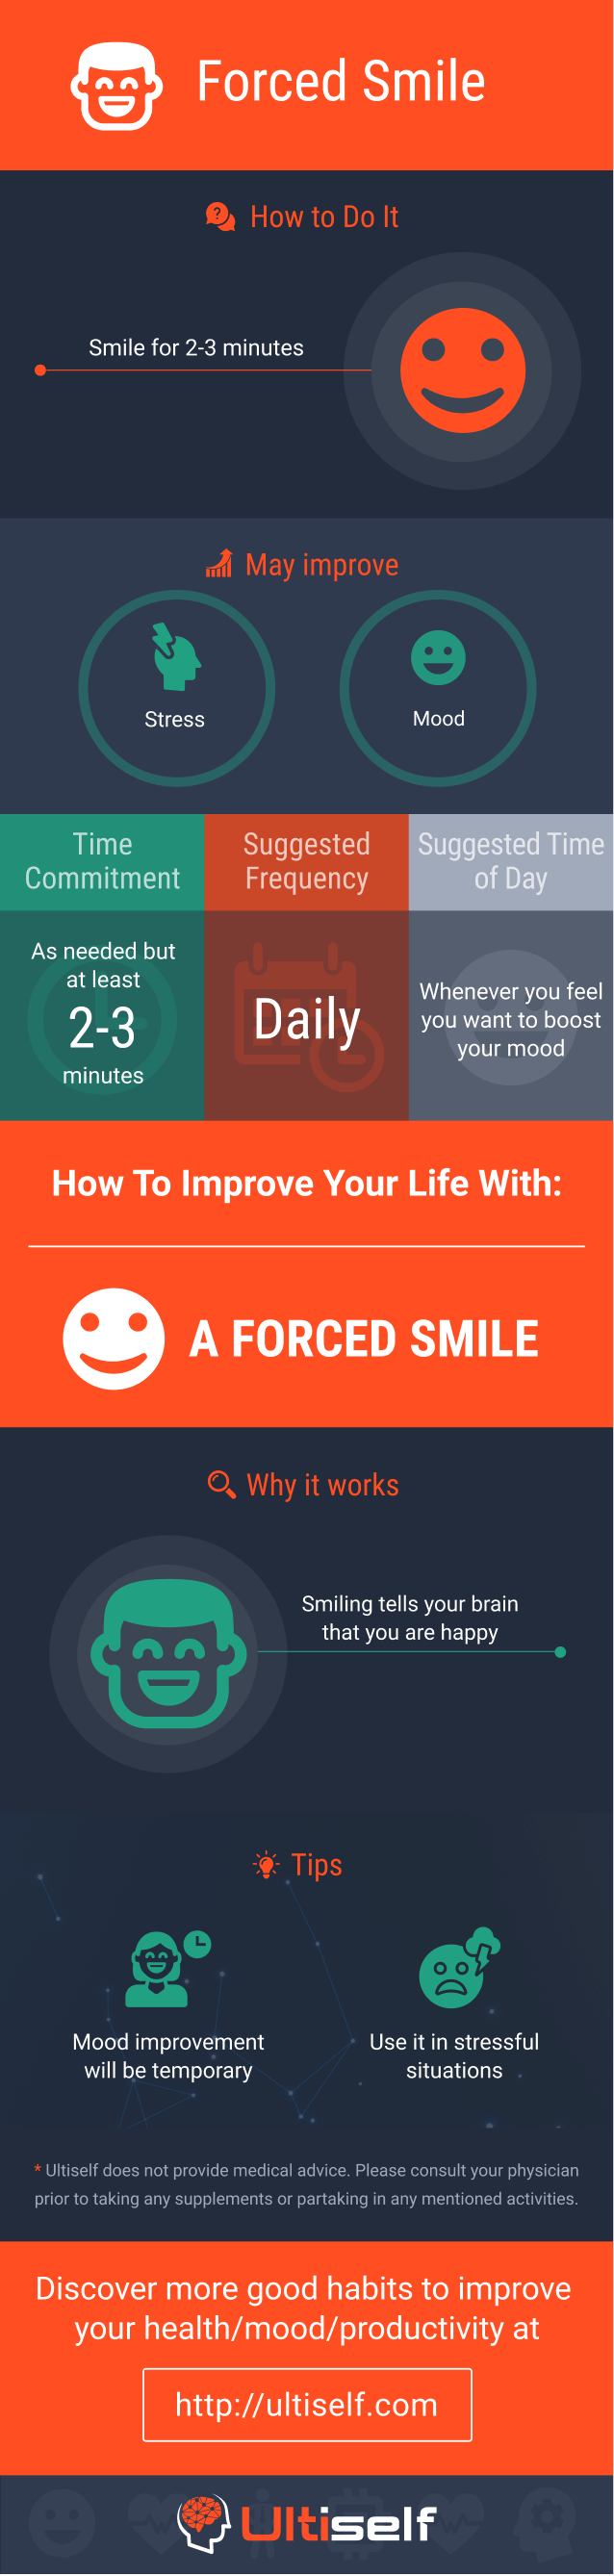 Forced Smile infographic